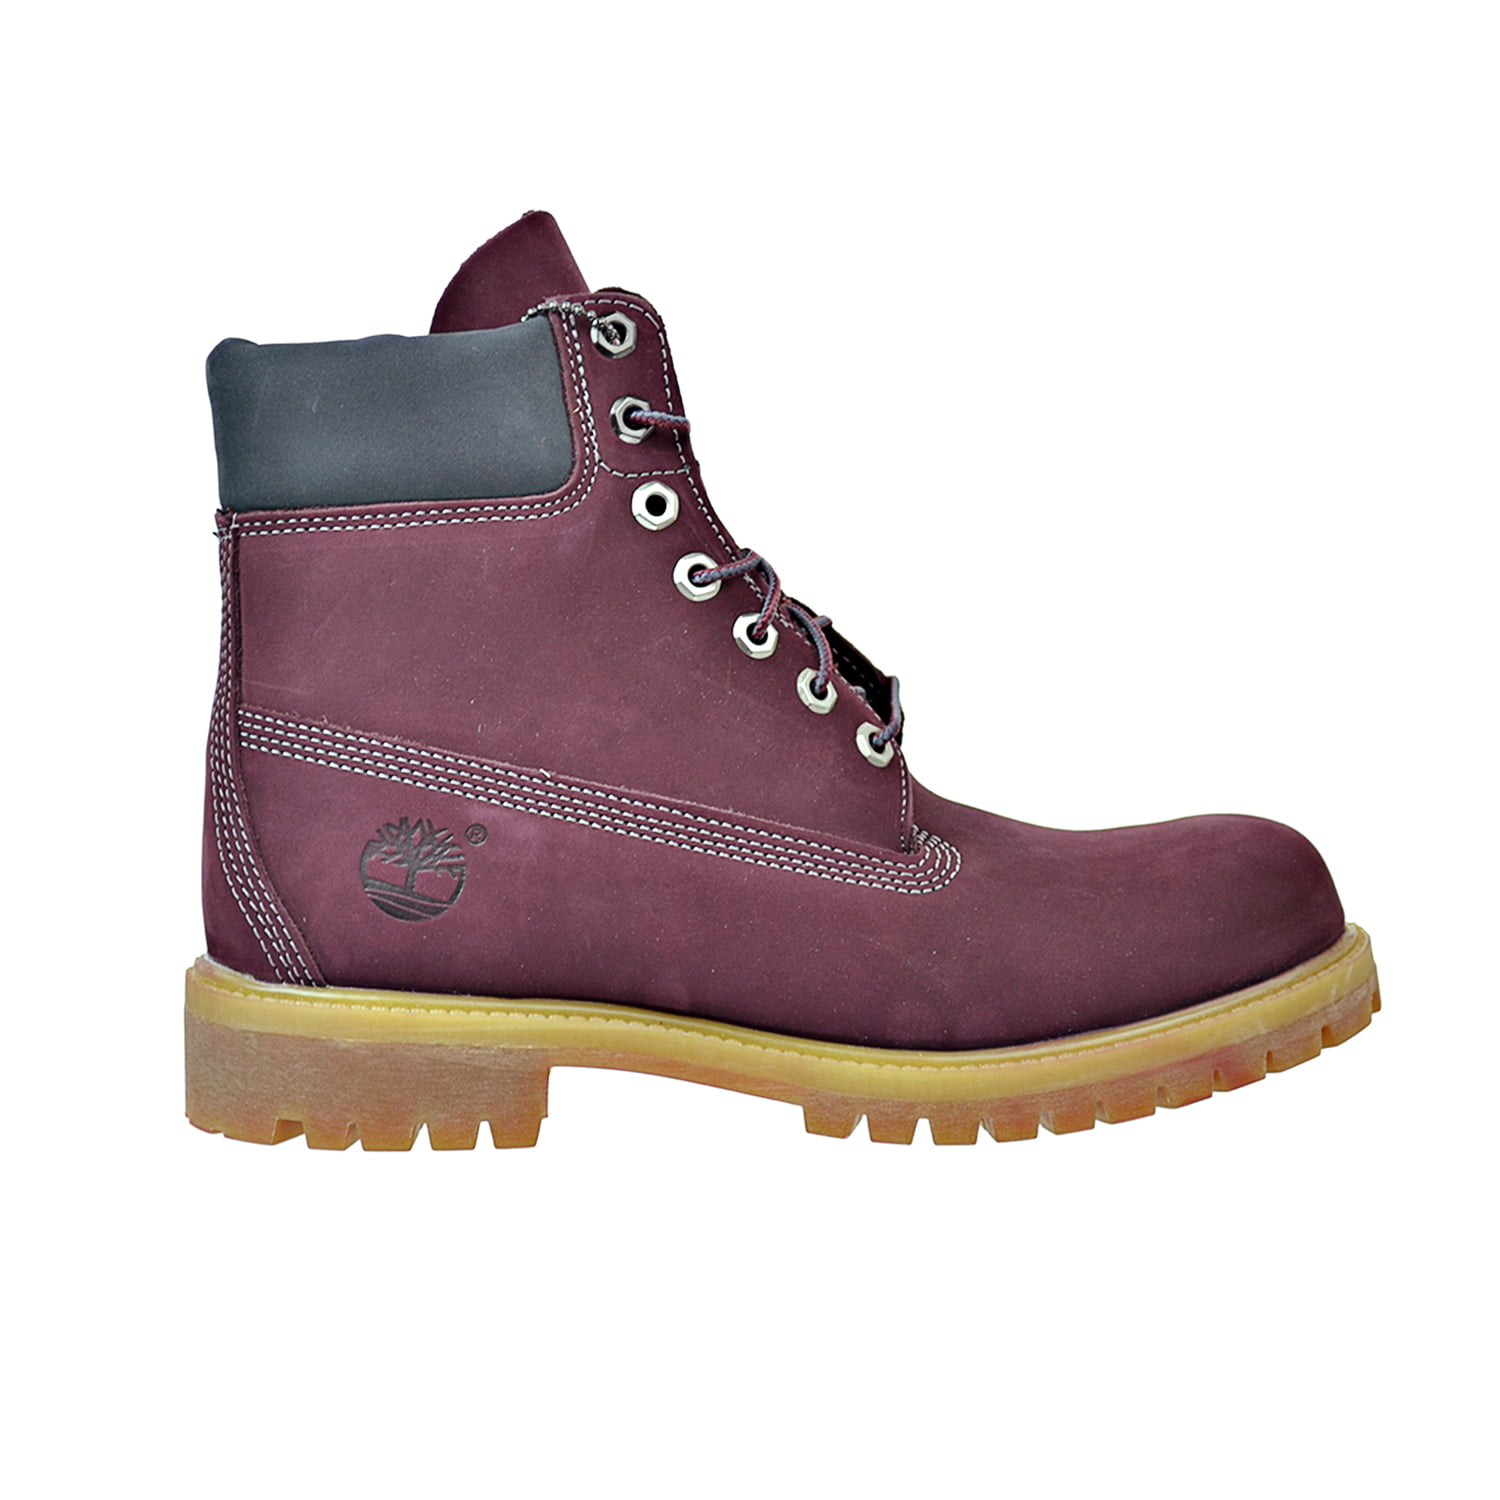 Timberland 6 Inch Premium Waterproof Men's Boots Maroon Burgundy tb0a17yn by Timberland